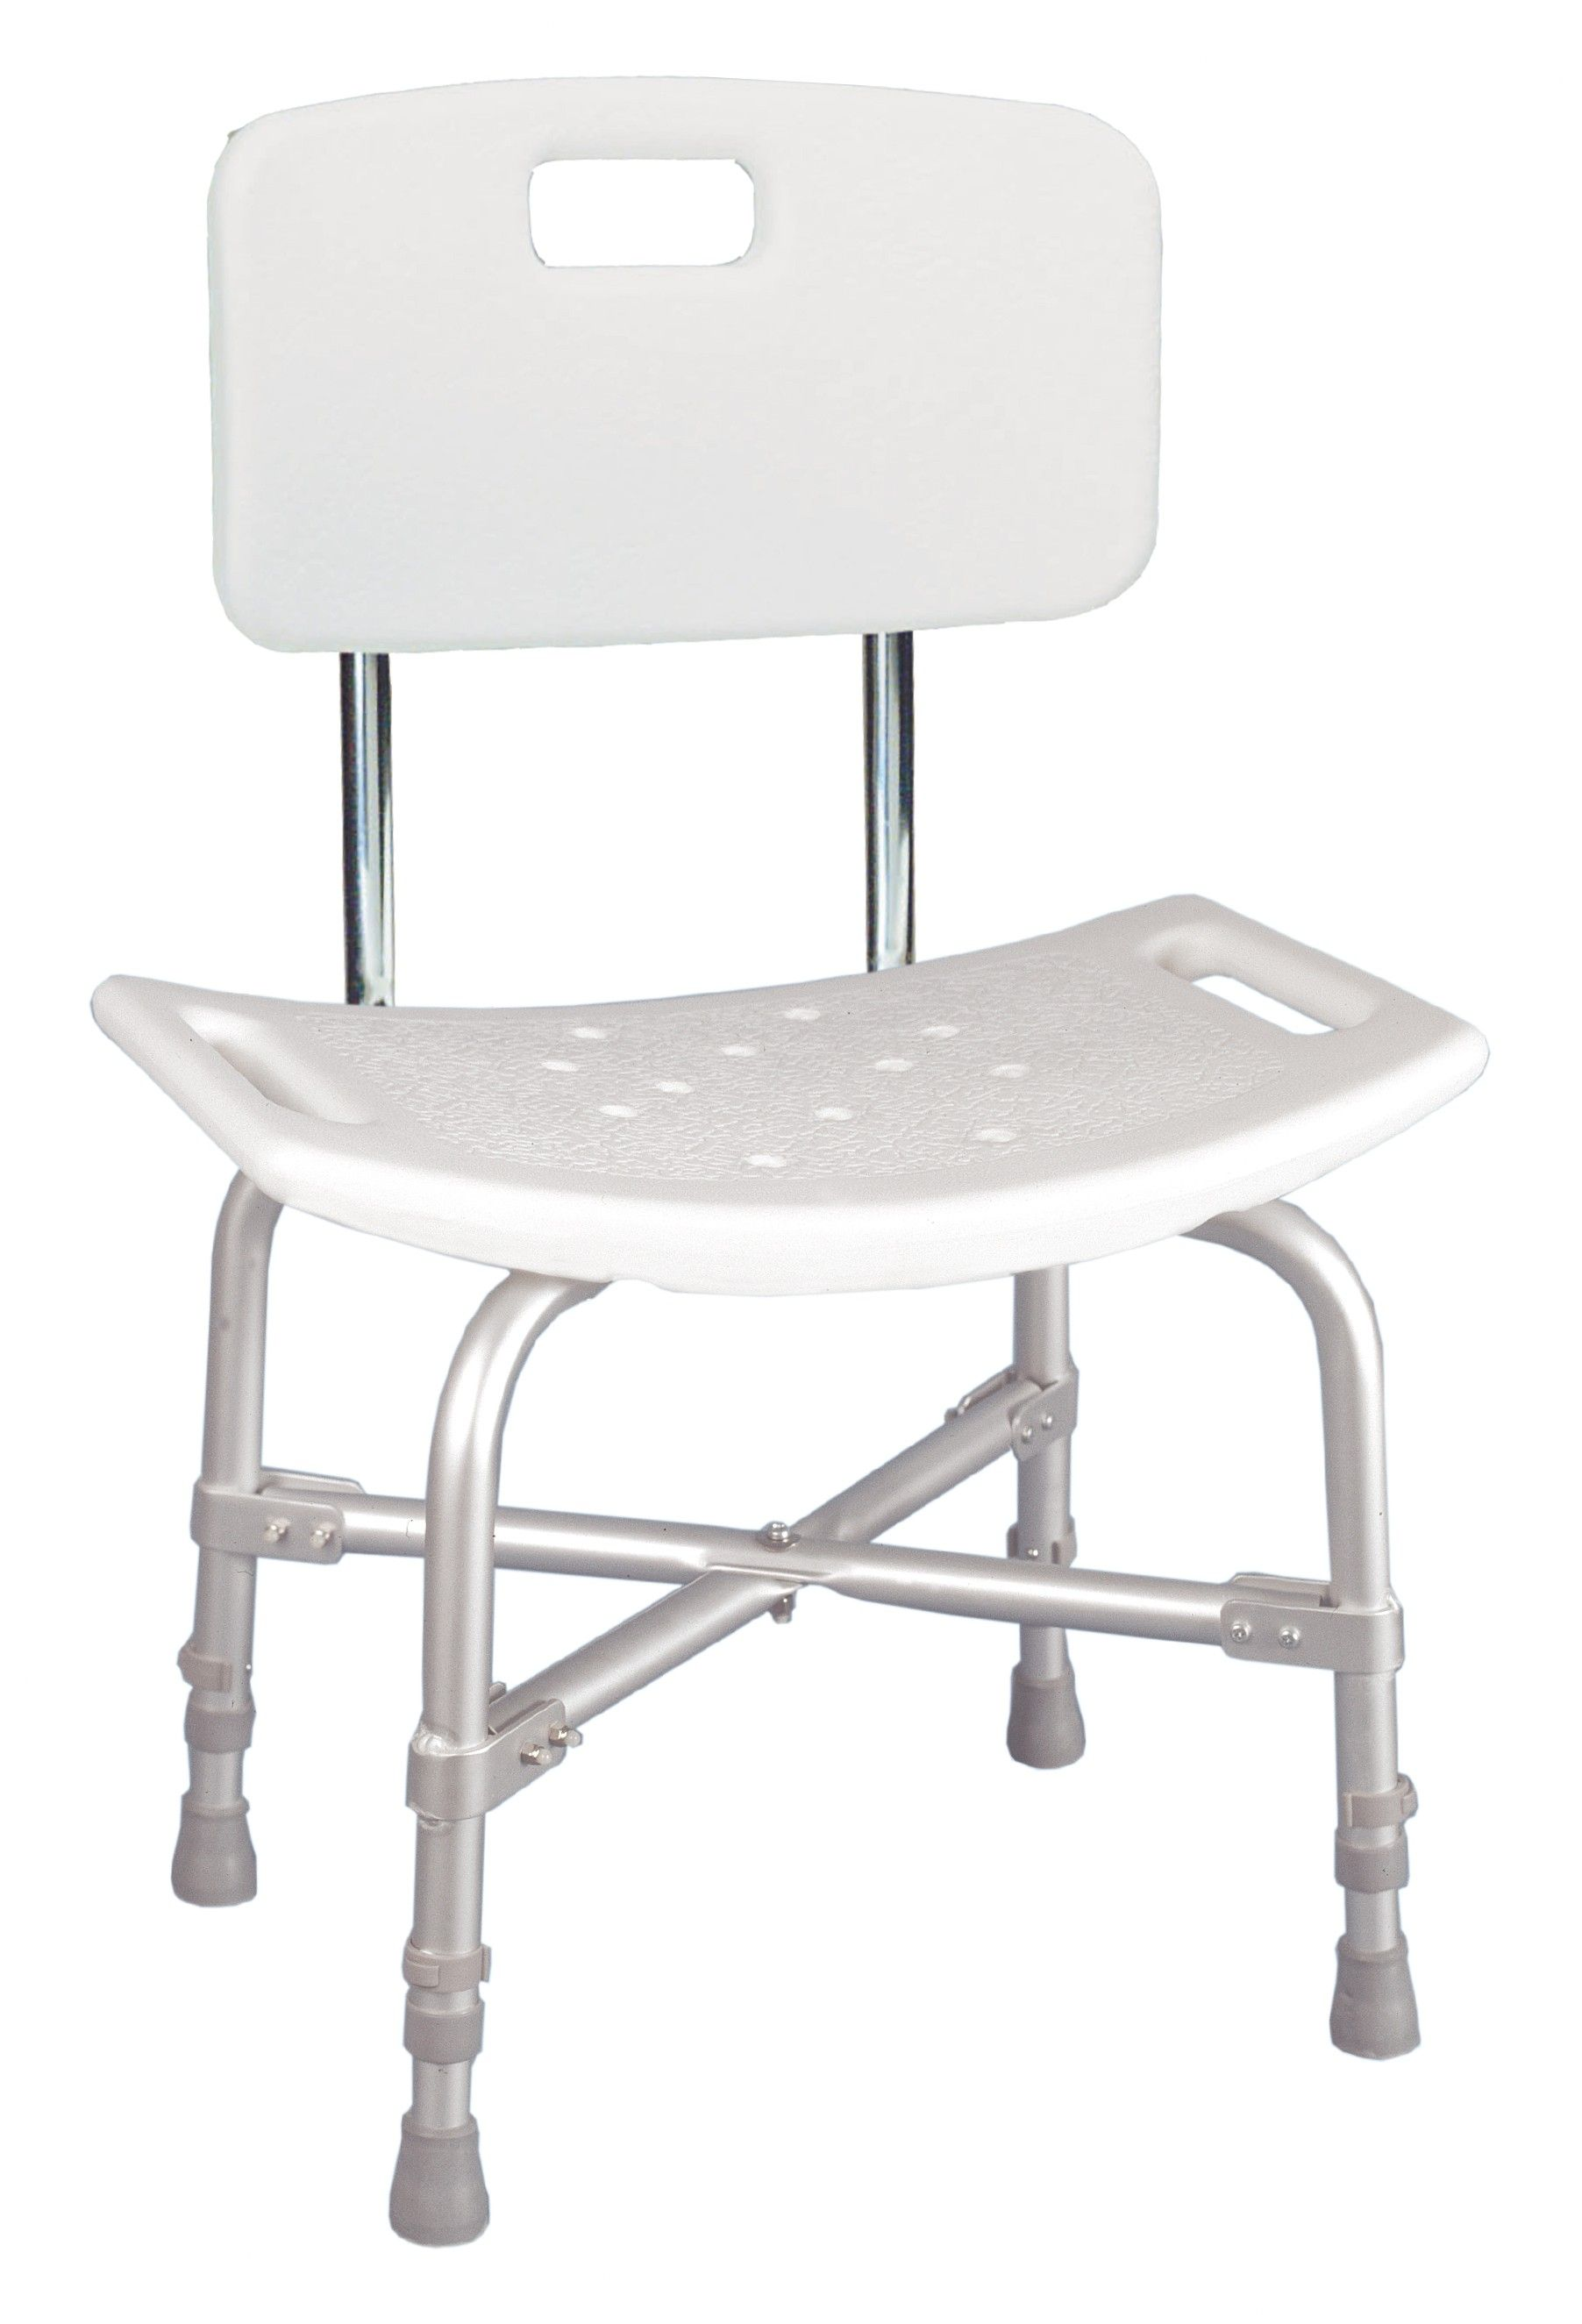 with kiribisscom unicare hire chair by malta for from directory in rentals arms products rent shower a or